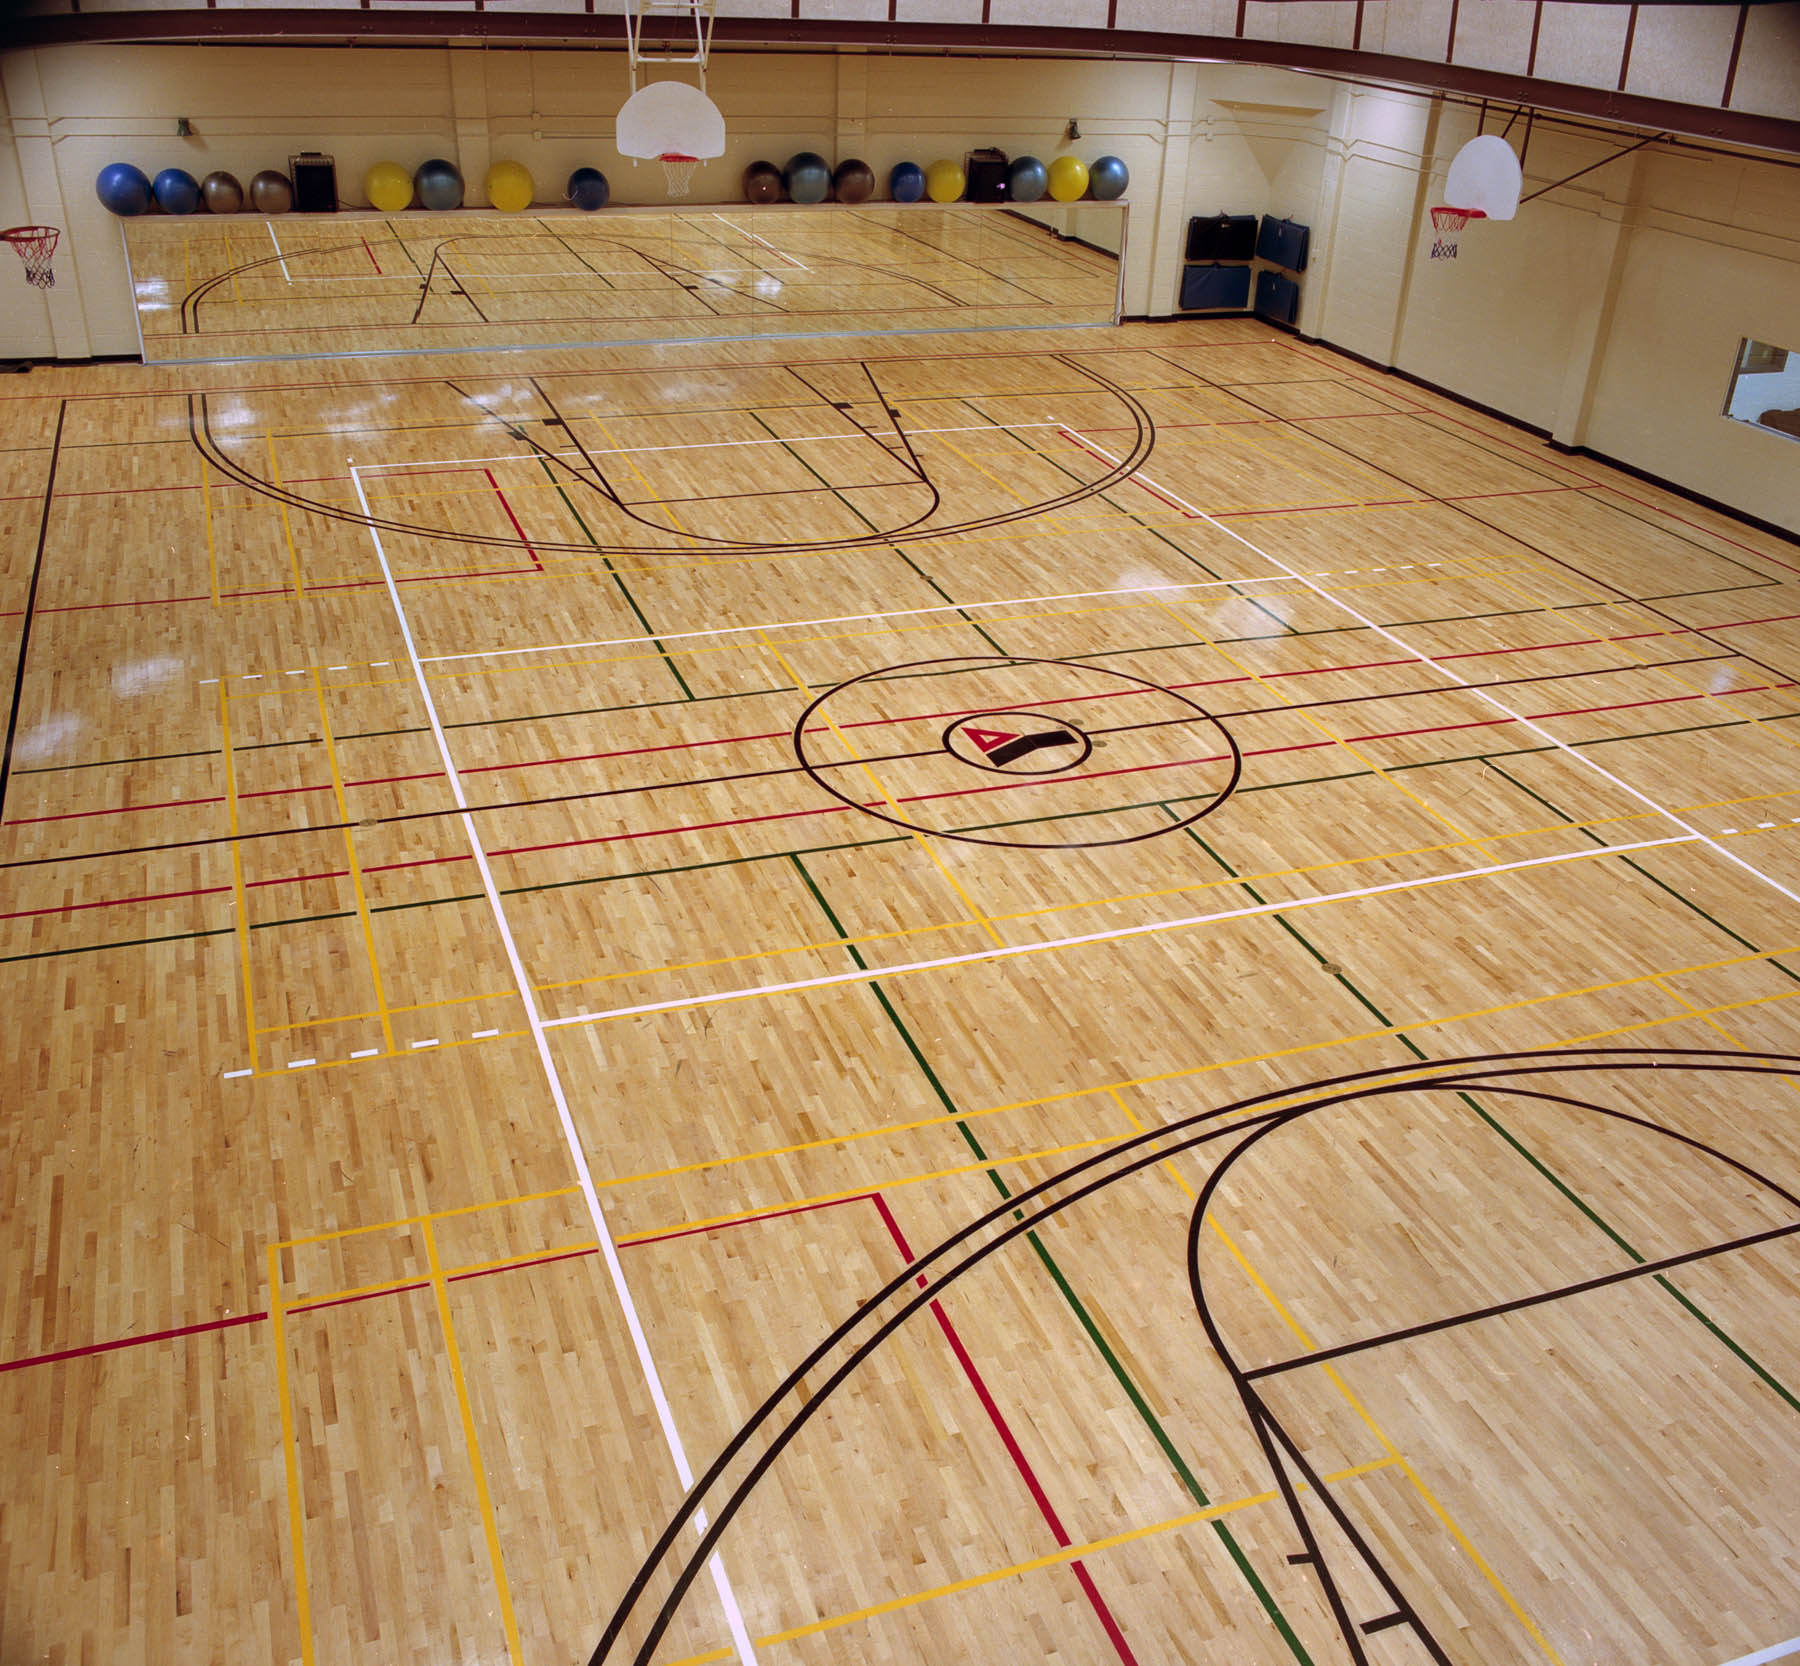 Gymnasium with wood floor with the Y logo, basketball nets and mirrored wall with yoga balls